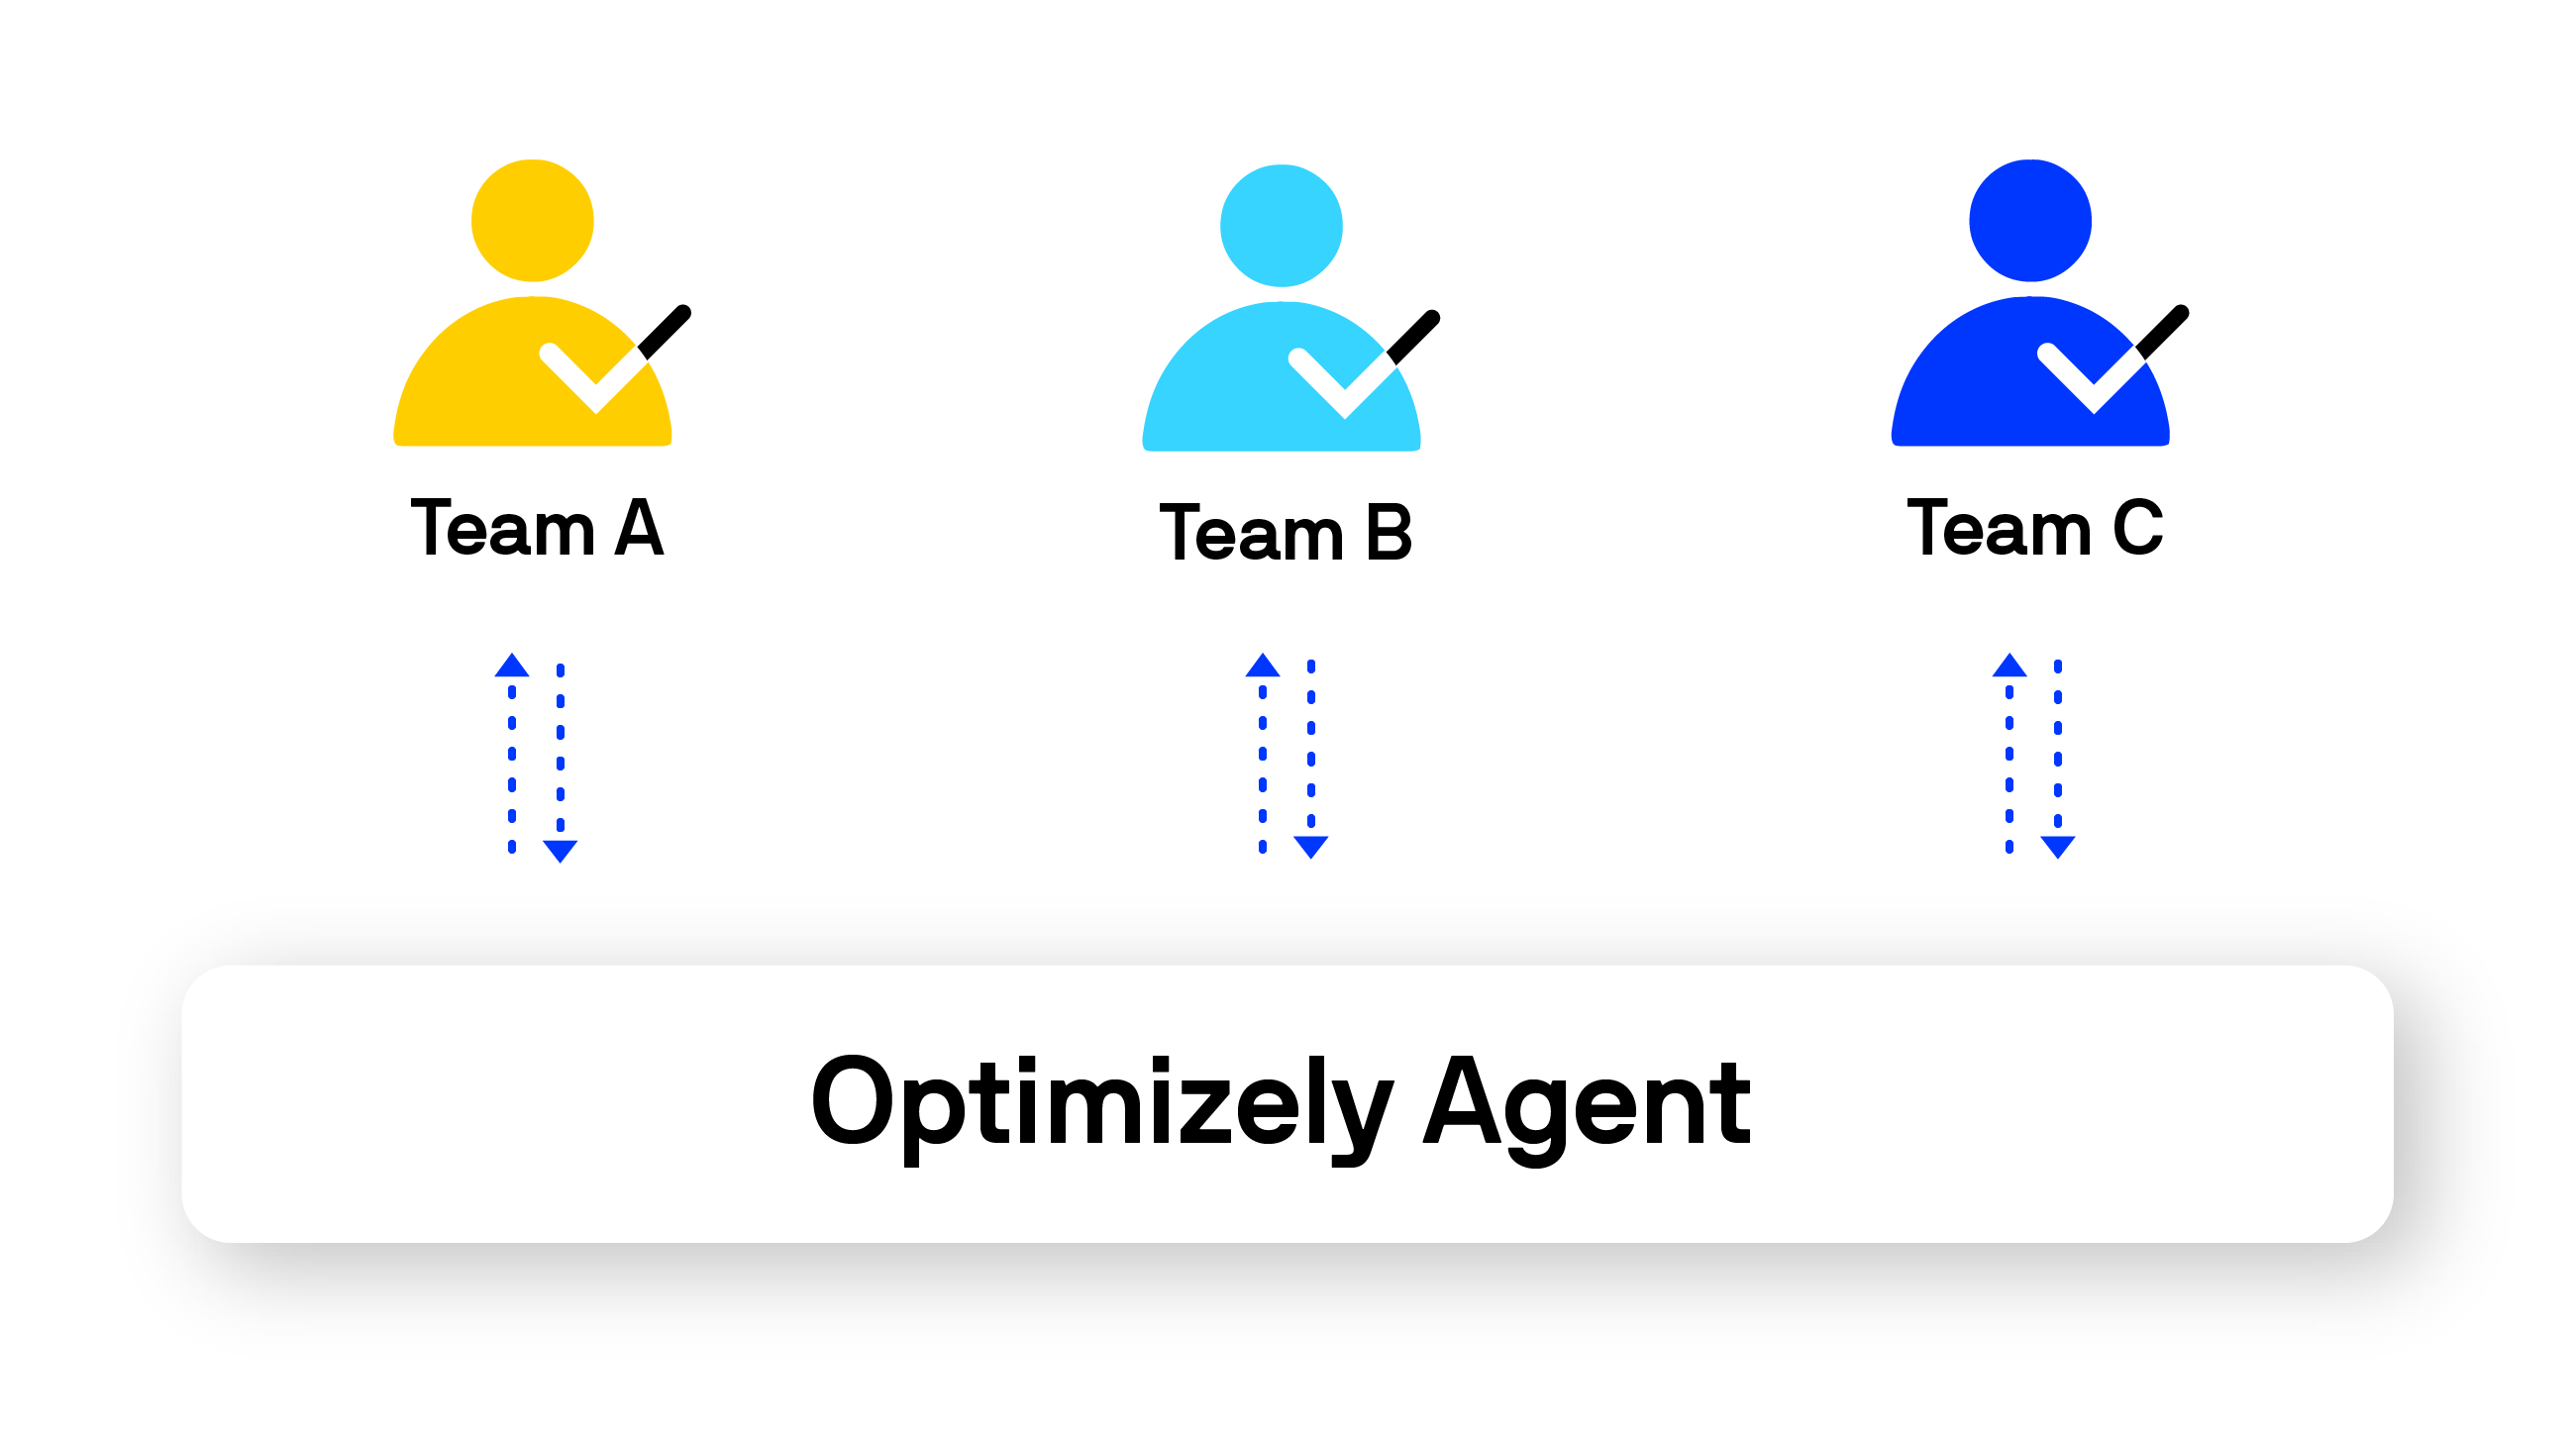 A diagram showing the central and standardized access to the Optimizely Agent service across an arbitrary number of teams. (Click to Enlarge)